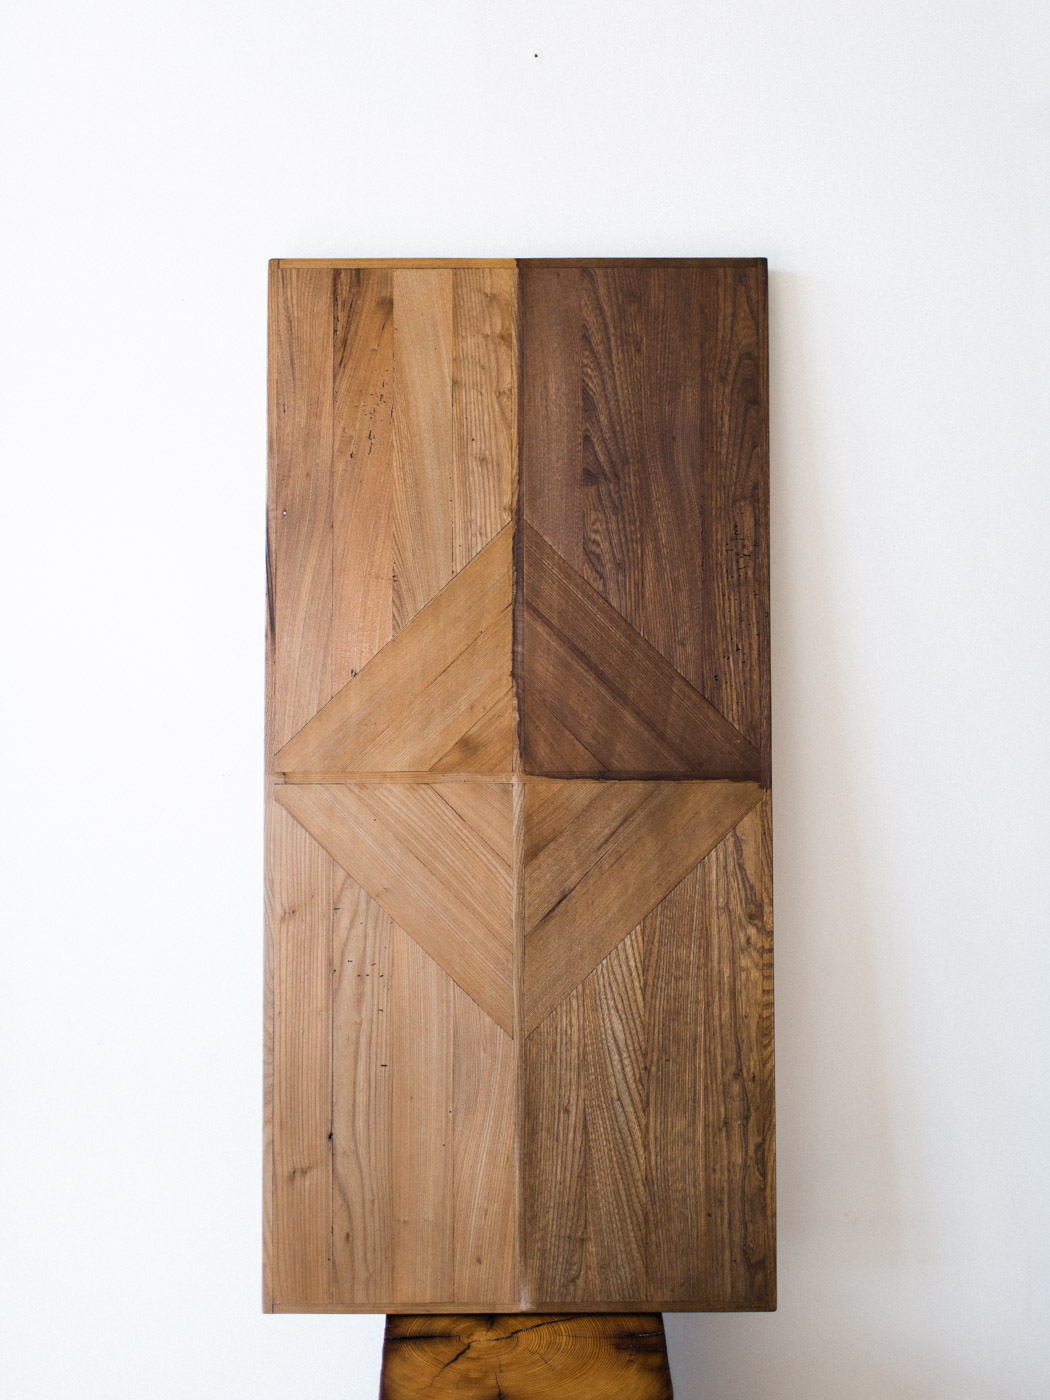 BeReclaimed - Reclaimed Wood Artpiece - Elm Salvaged from a Barn in Goderich Ontario.jpg